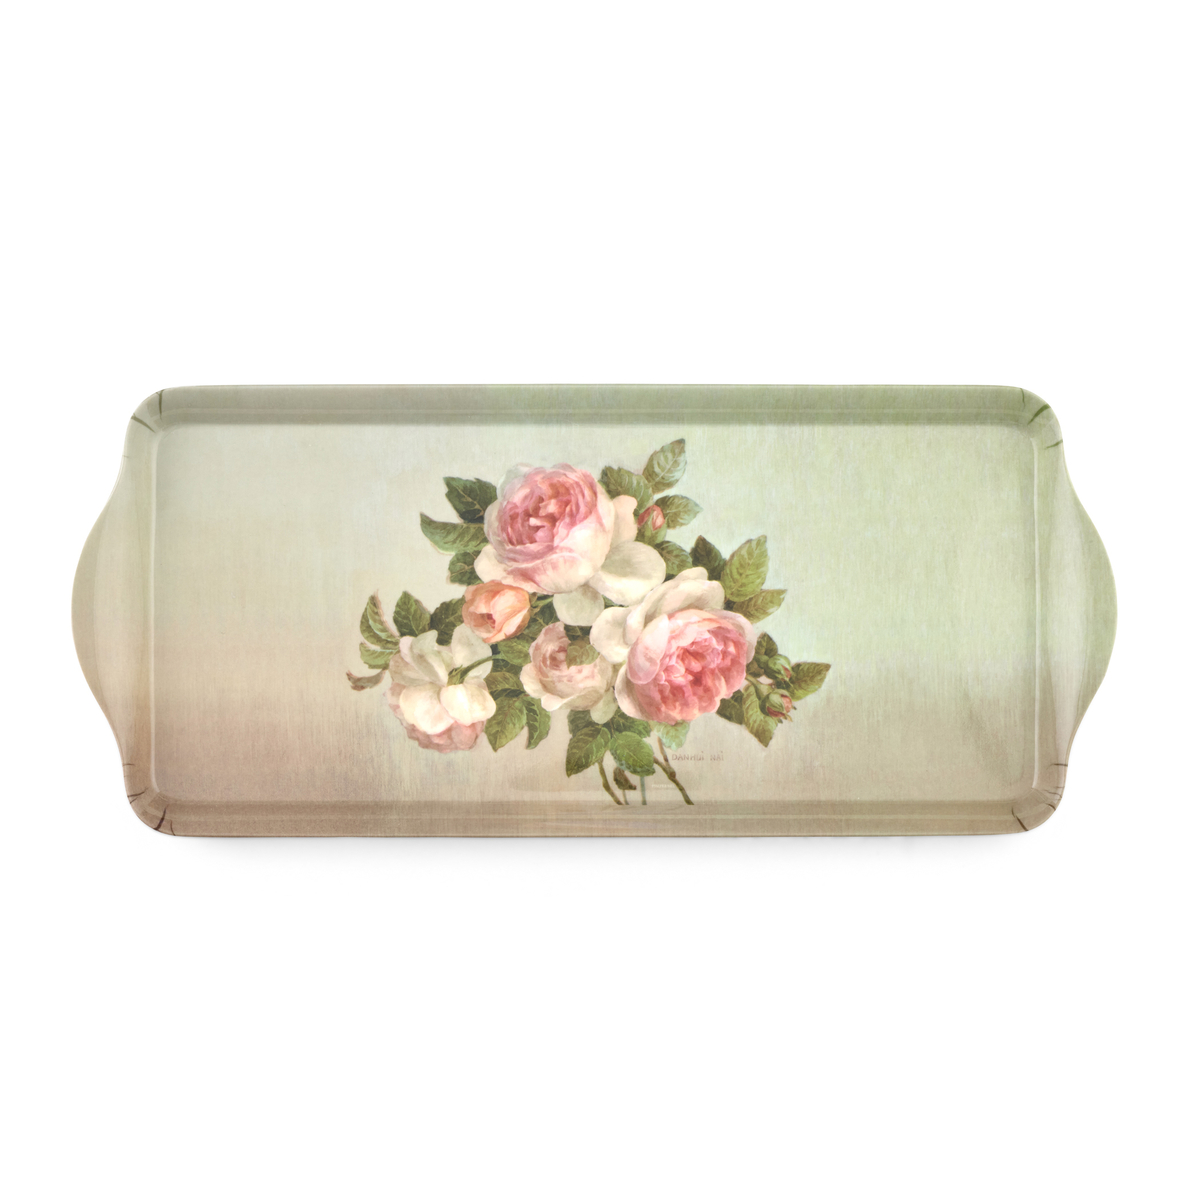 Pimpernel Antique Roses Sandwich Tray image number 0